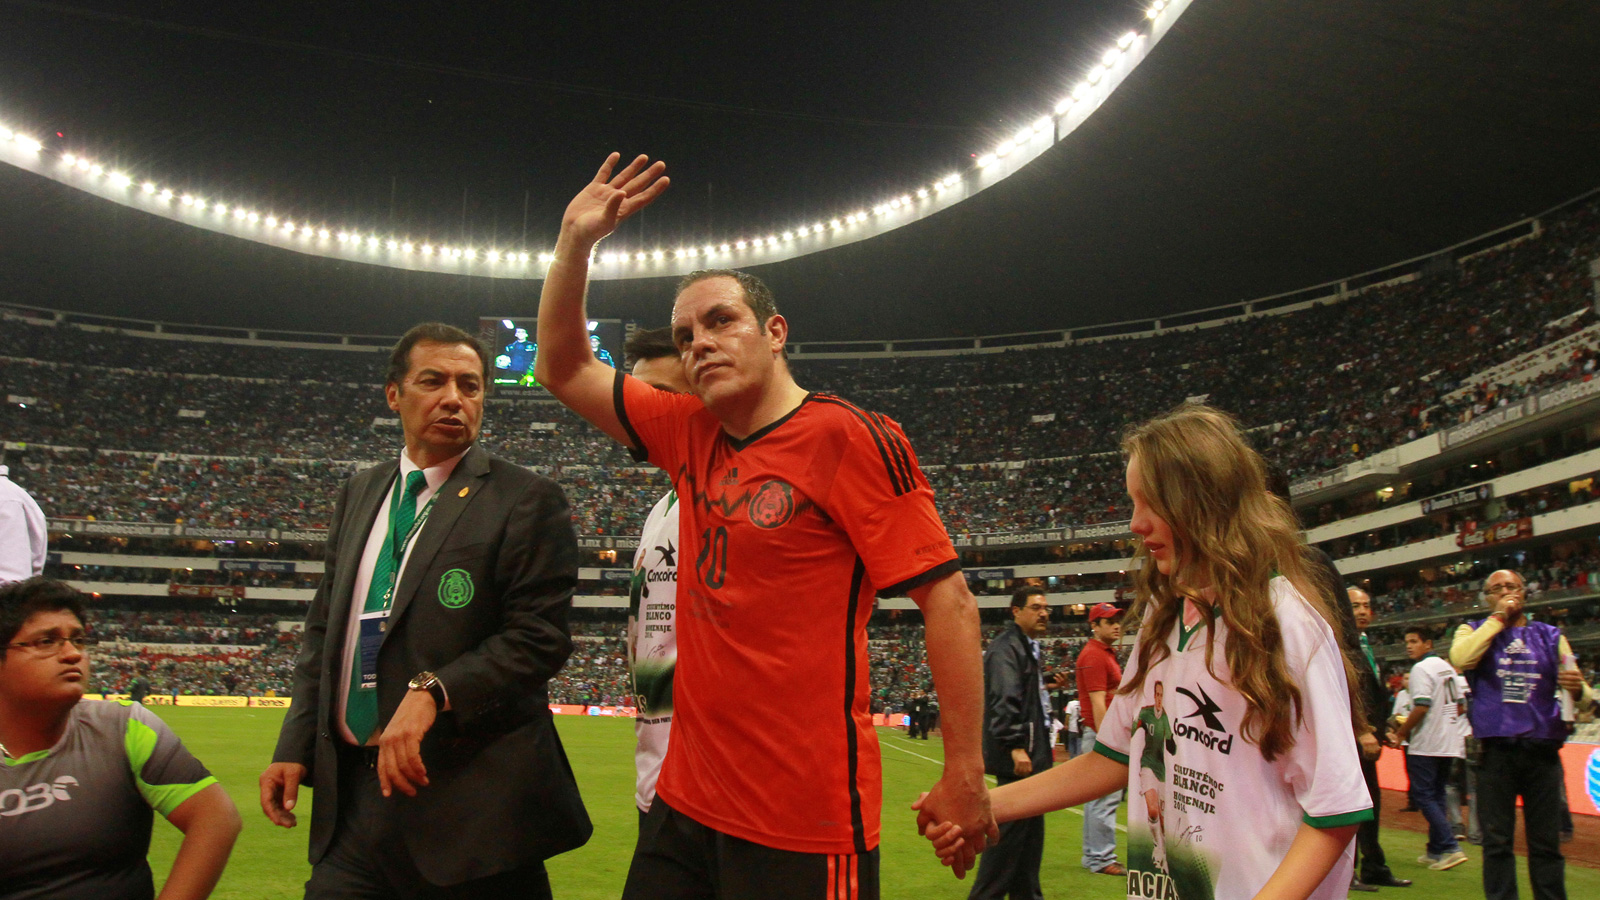 Blanco plays his final match for Mexico at Estadio Azteca in a friendly against Israel on May 28, 2014.